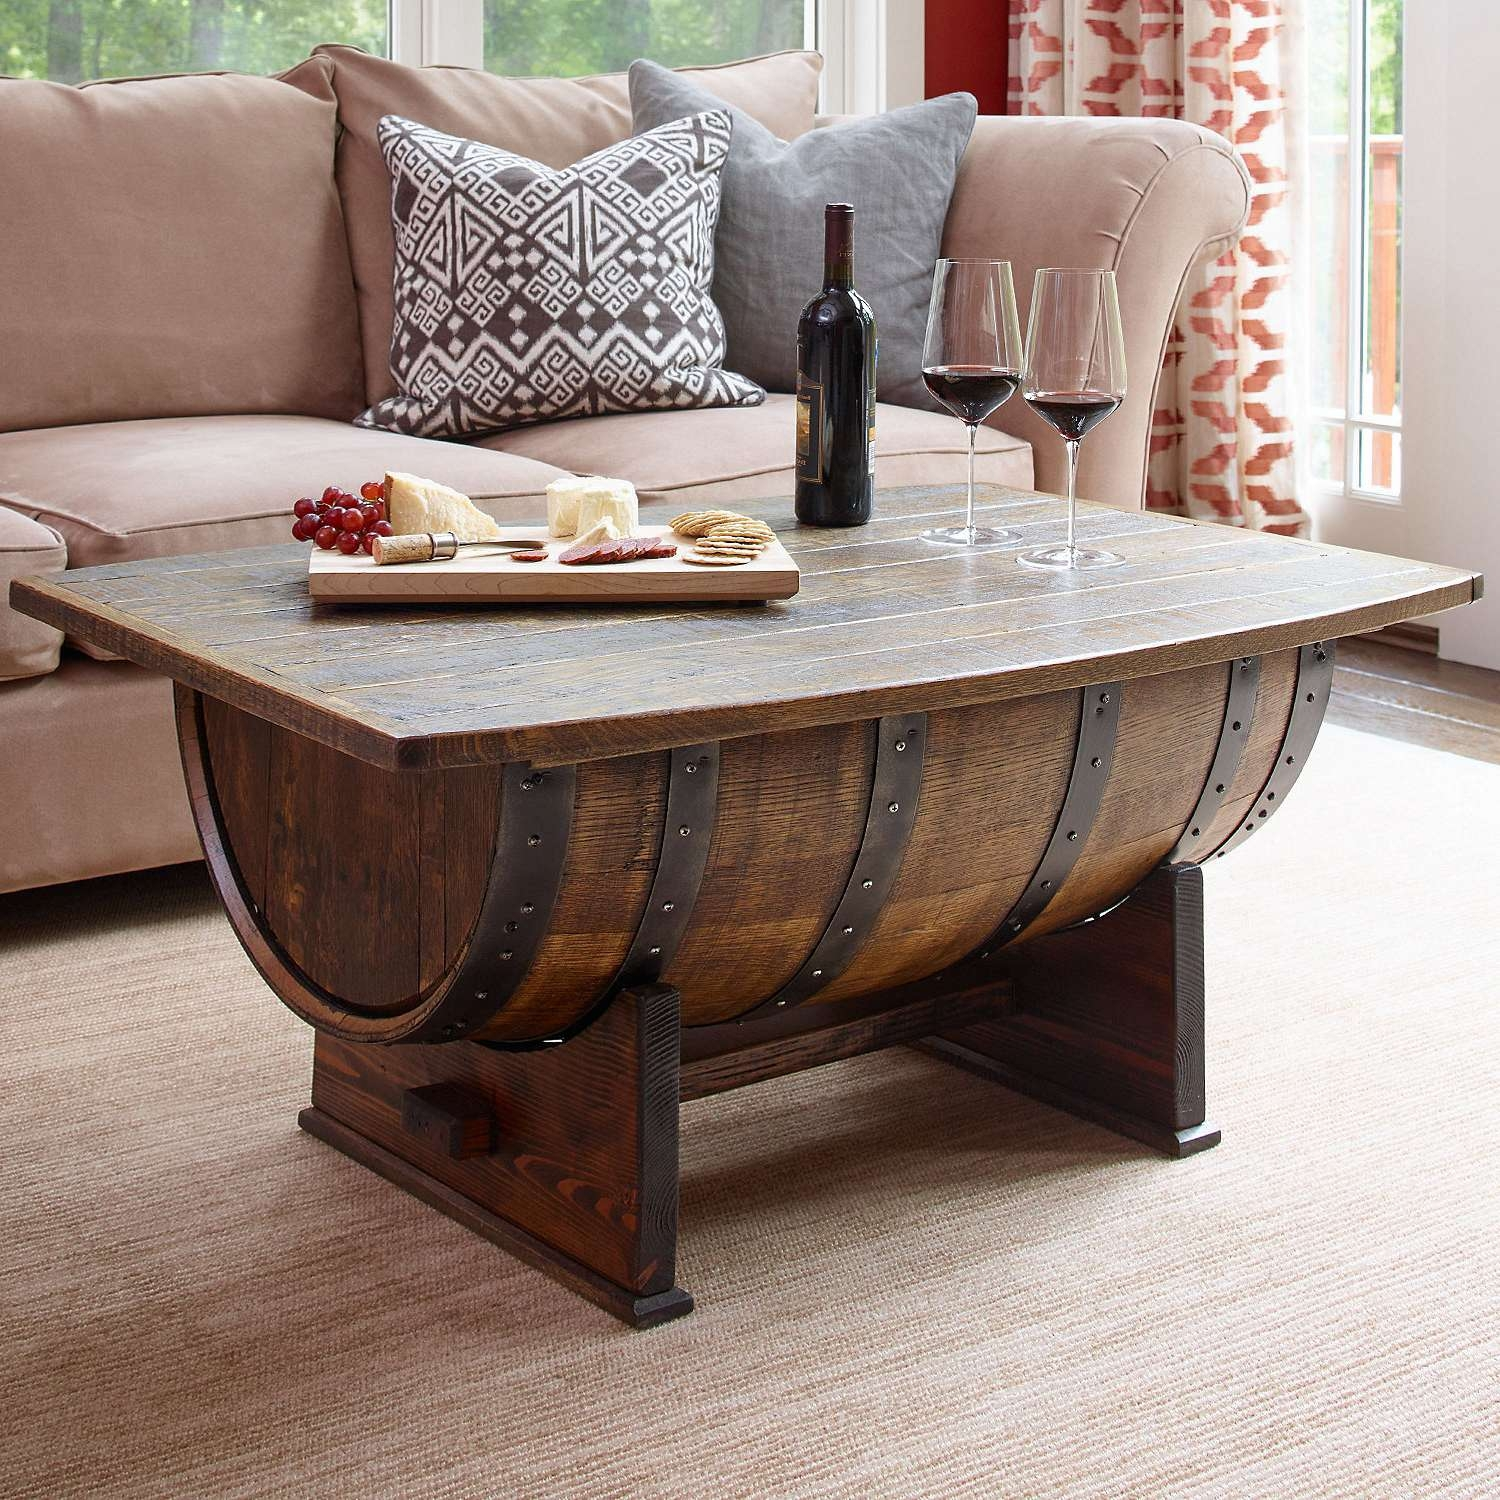 Handmade Vintage Oak Whiskey Barrel Coffee Table – Wine Enthusiast For Recent Dining Coffee Tables (View 14 of 20)